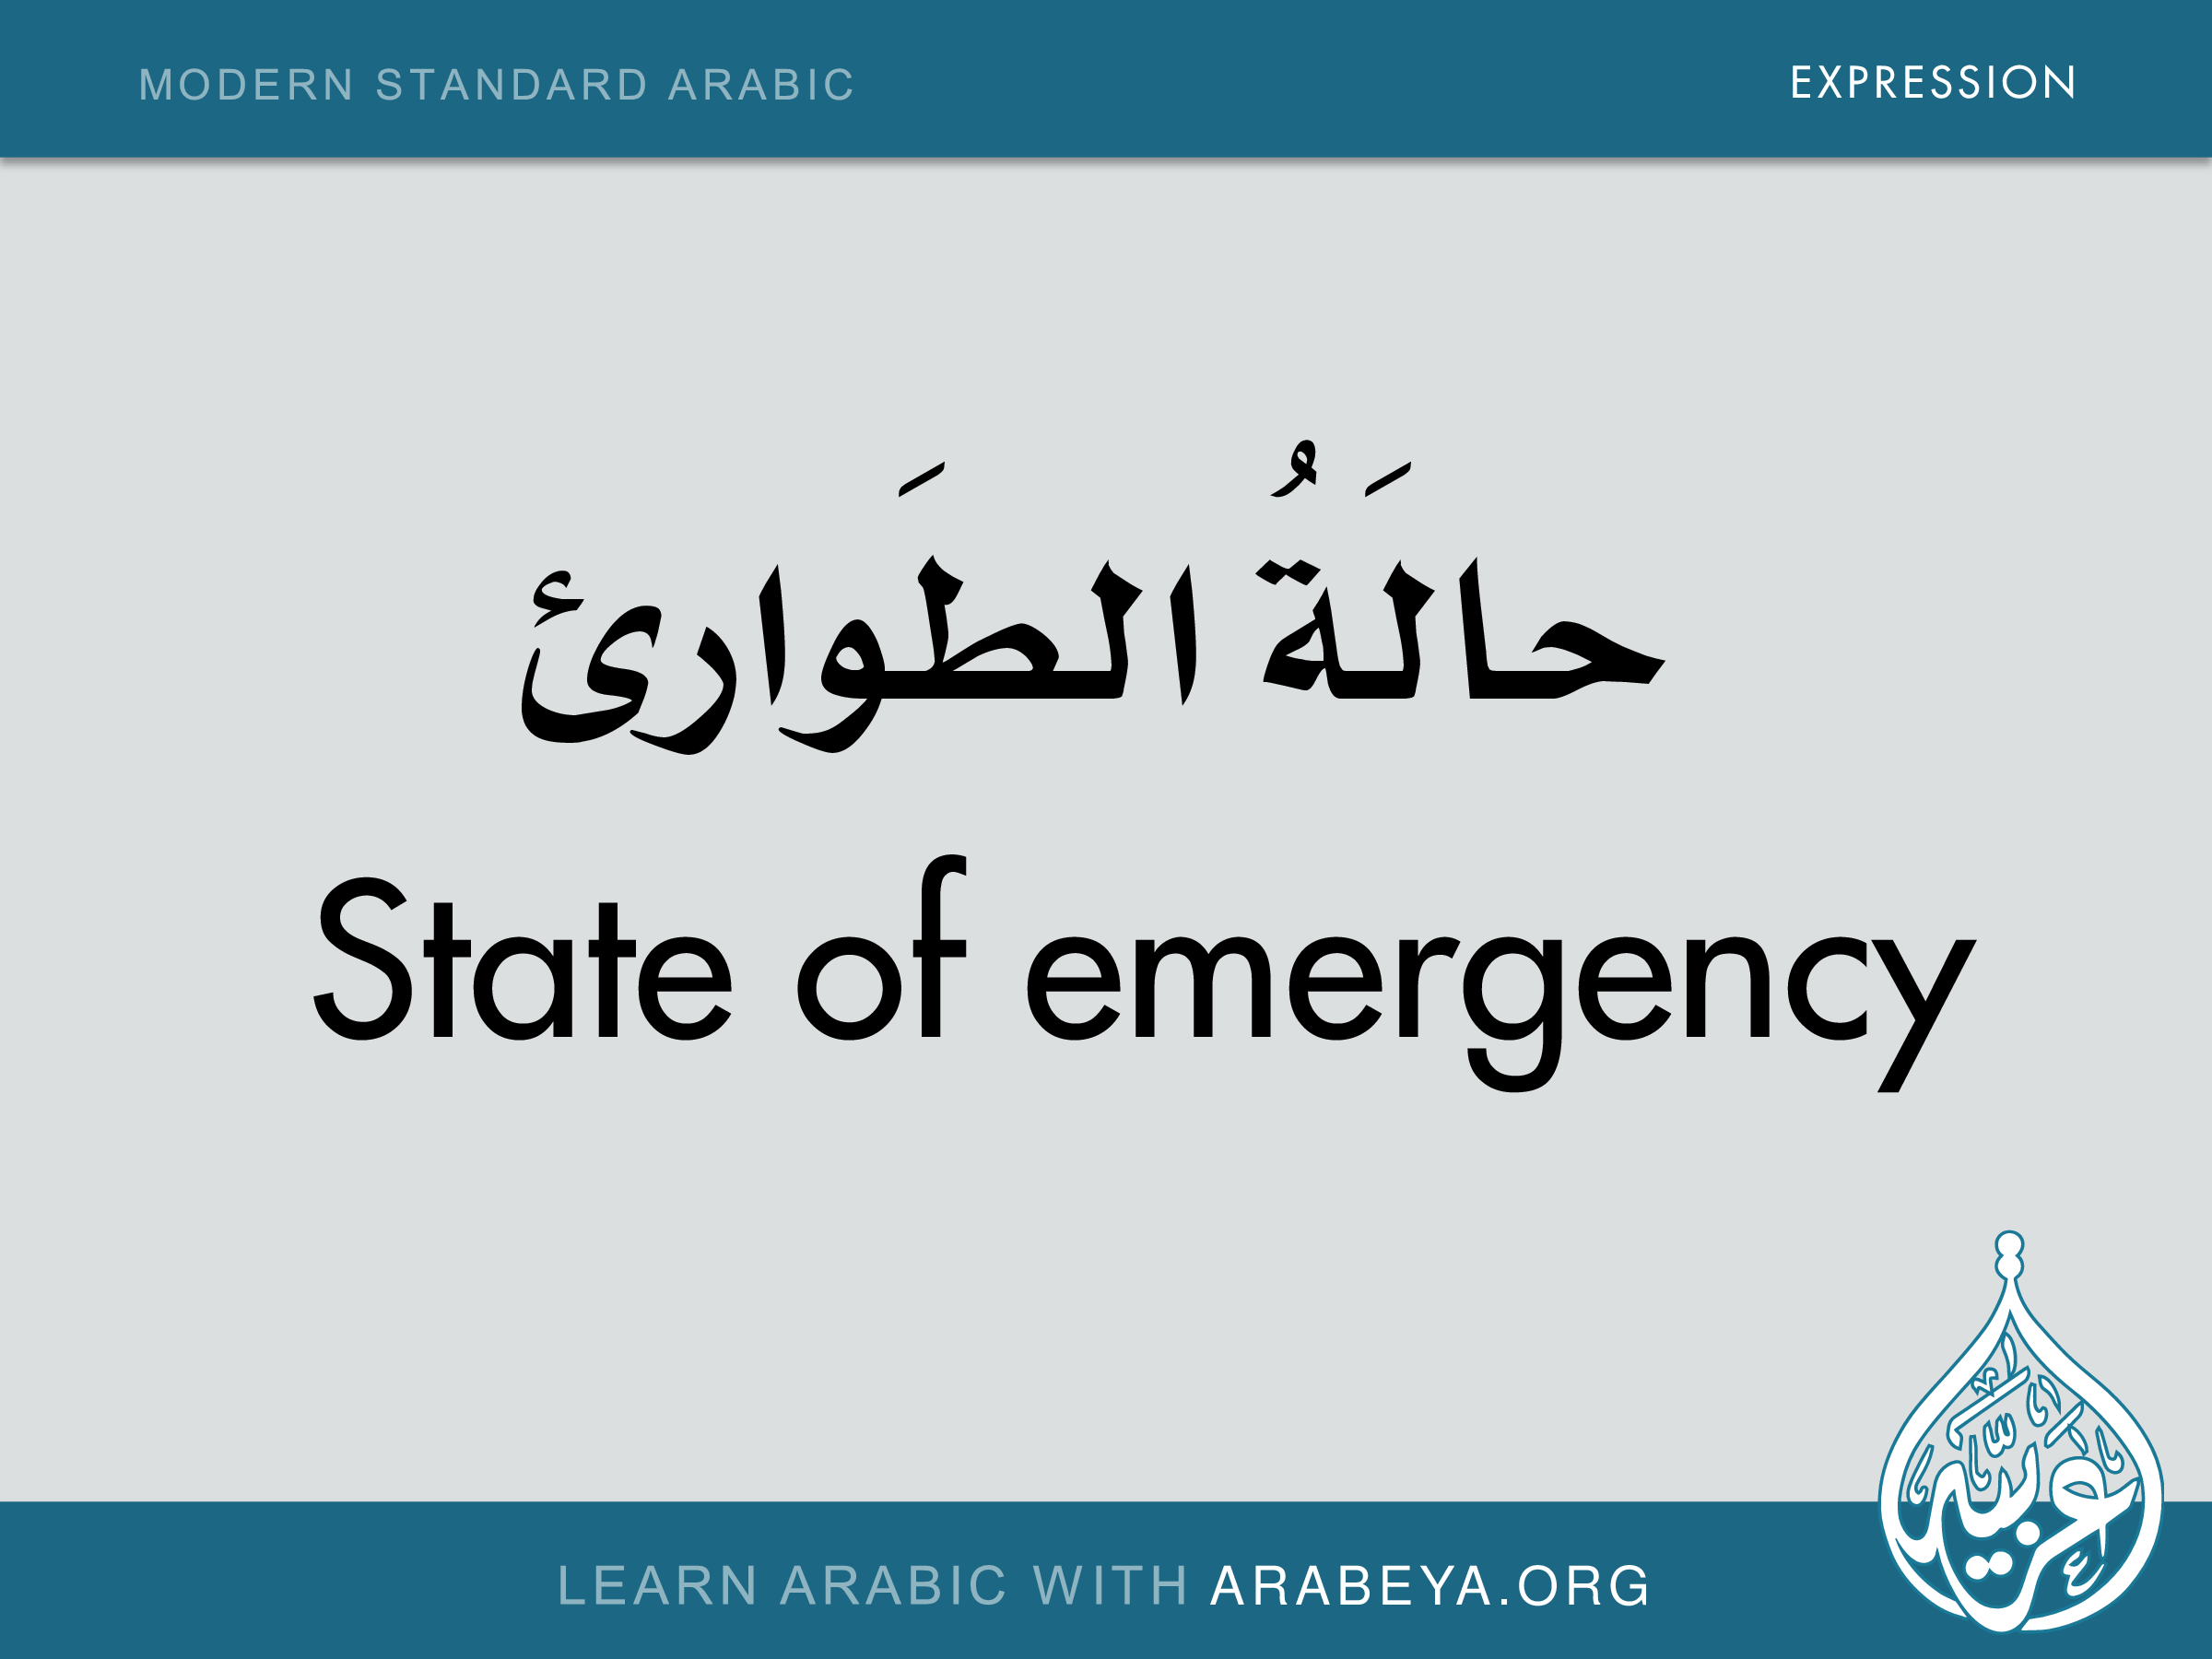 State of emergency | Improve your Modern Standard Arabic